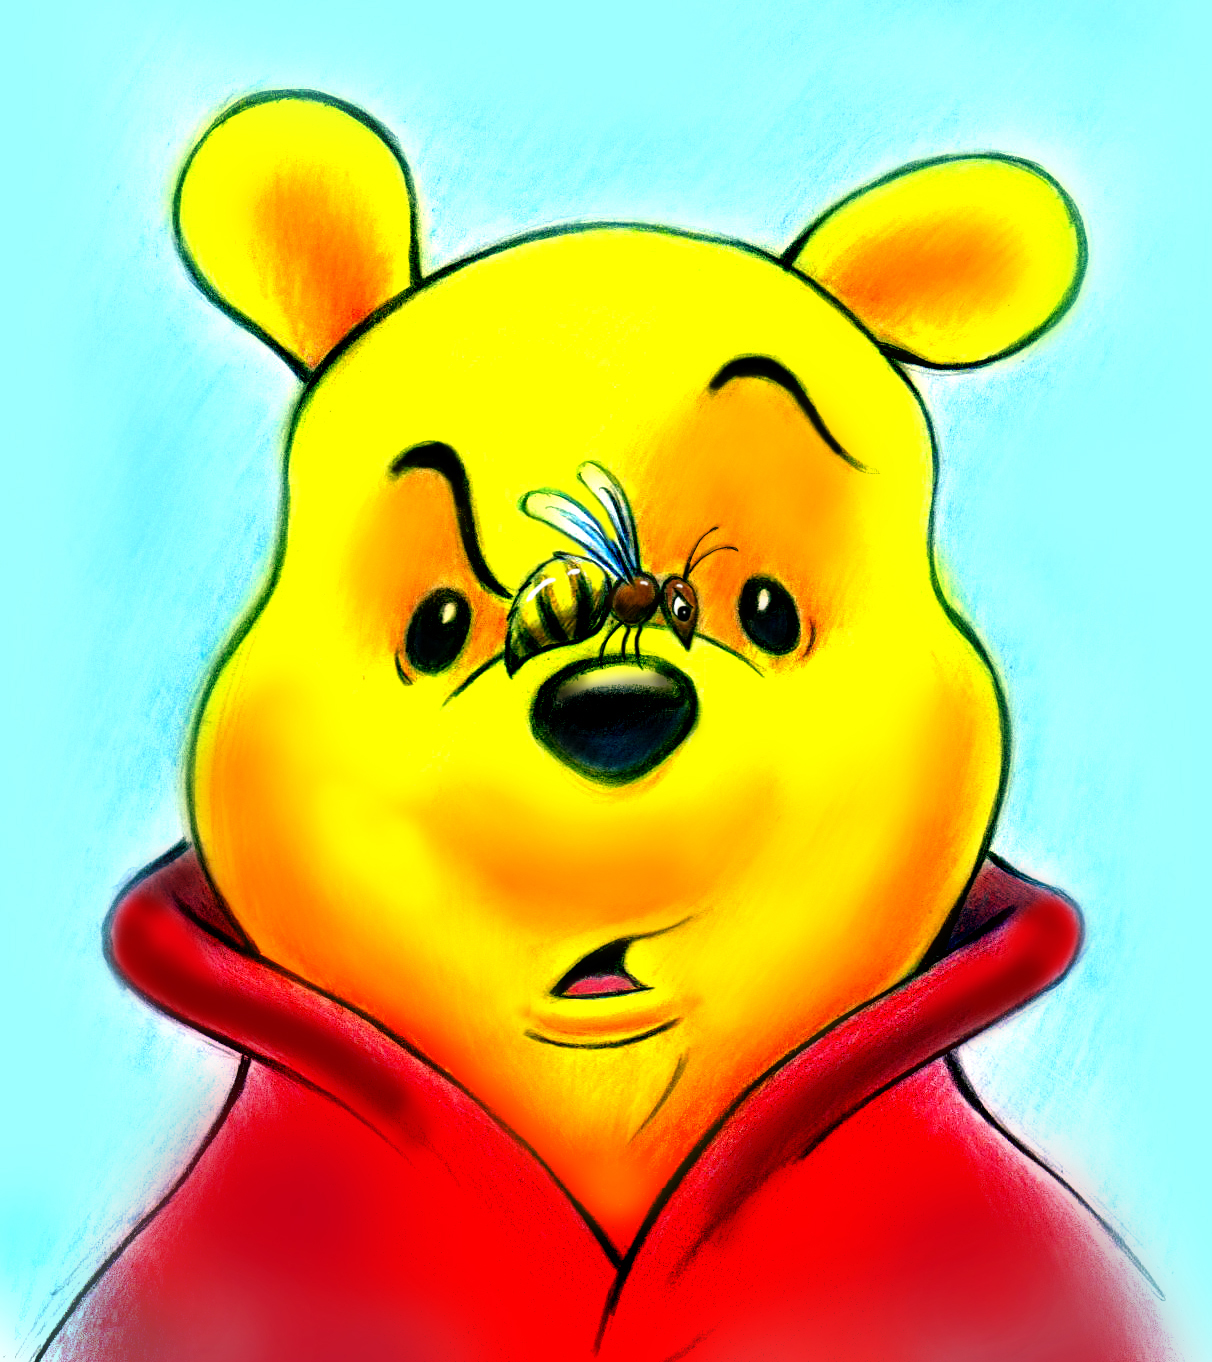 winnie_the_pooh_by_zdrer456-d37nleb.jpg